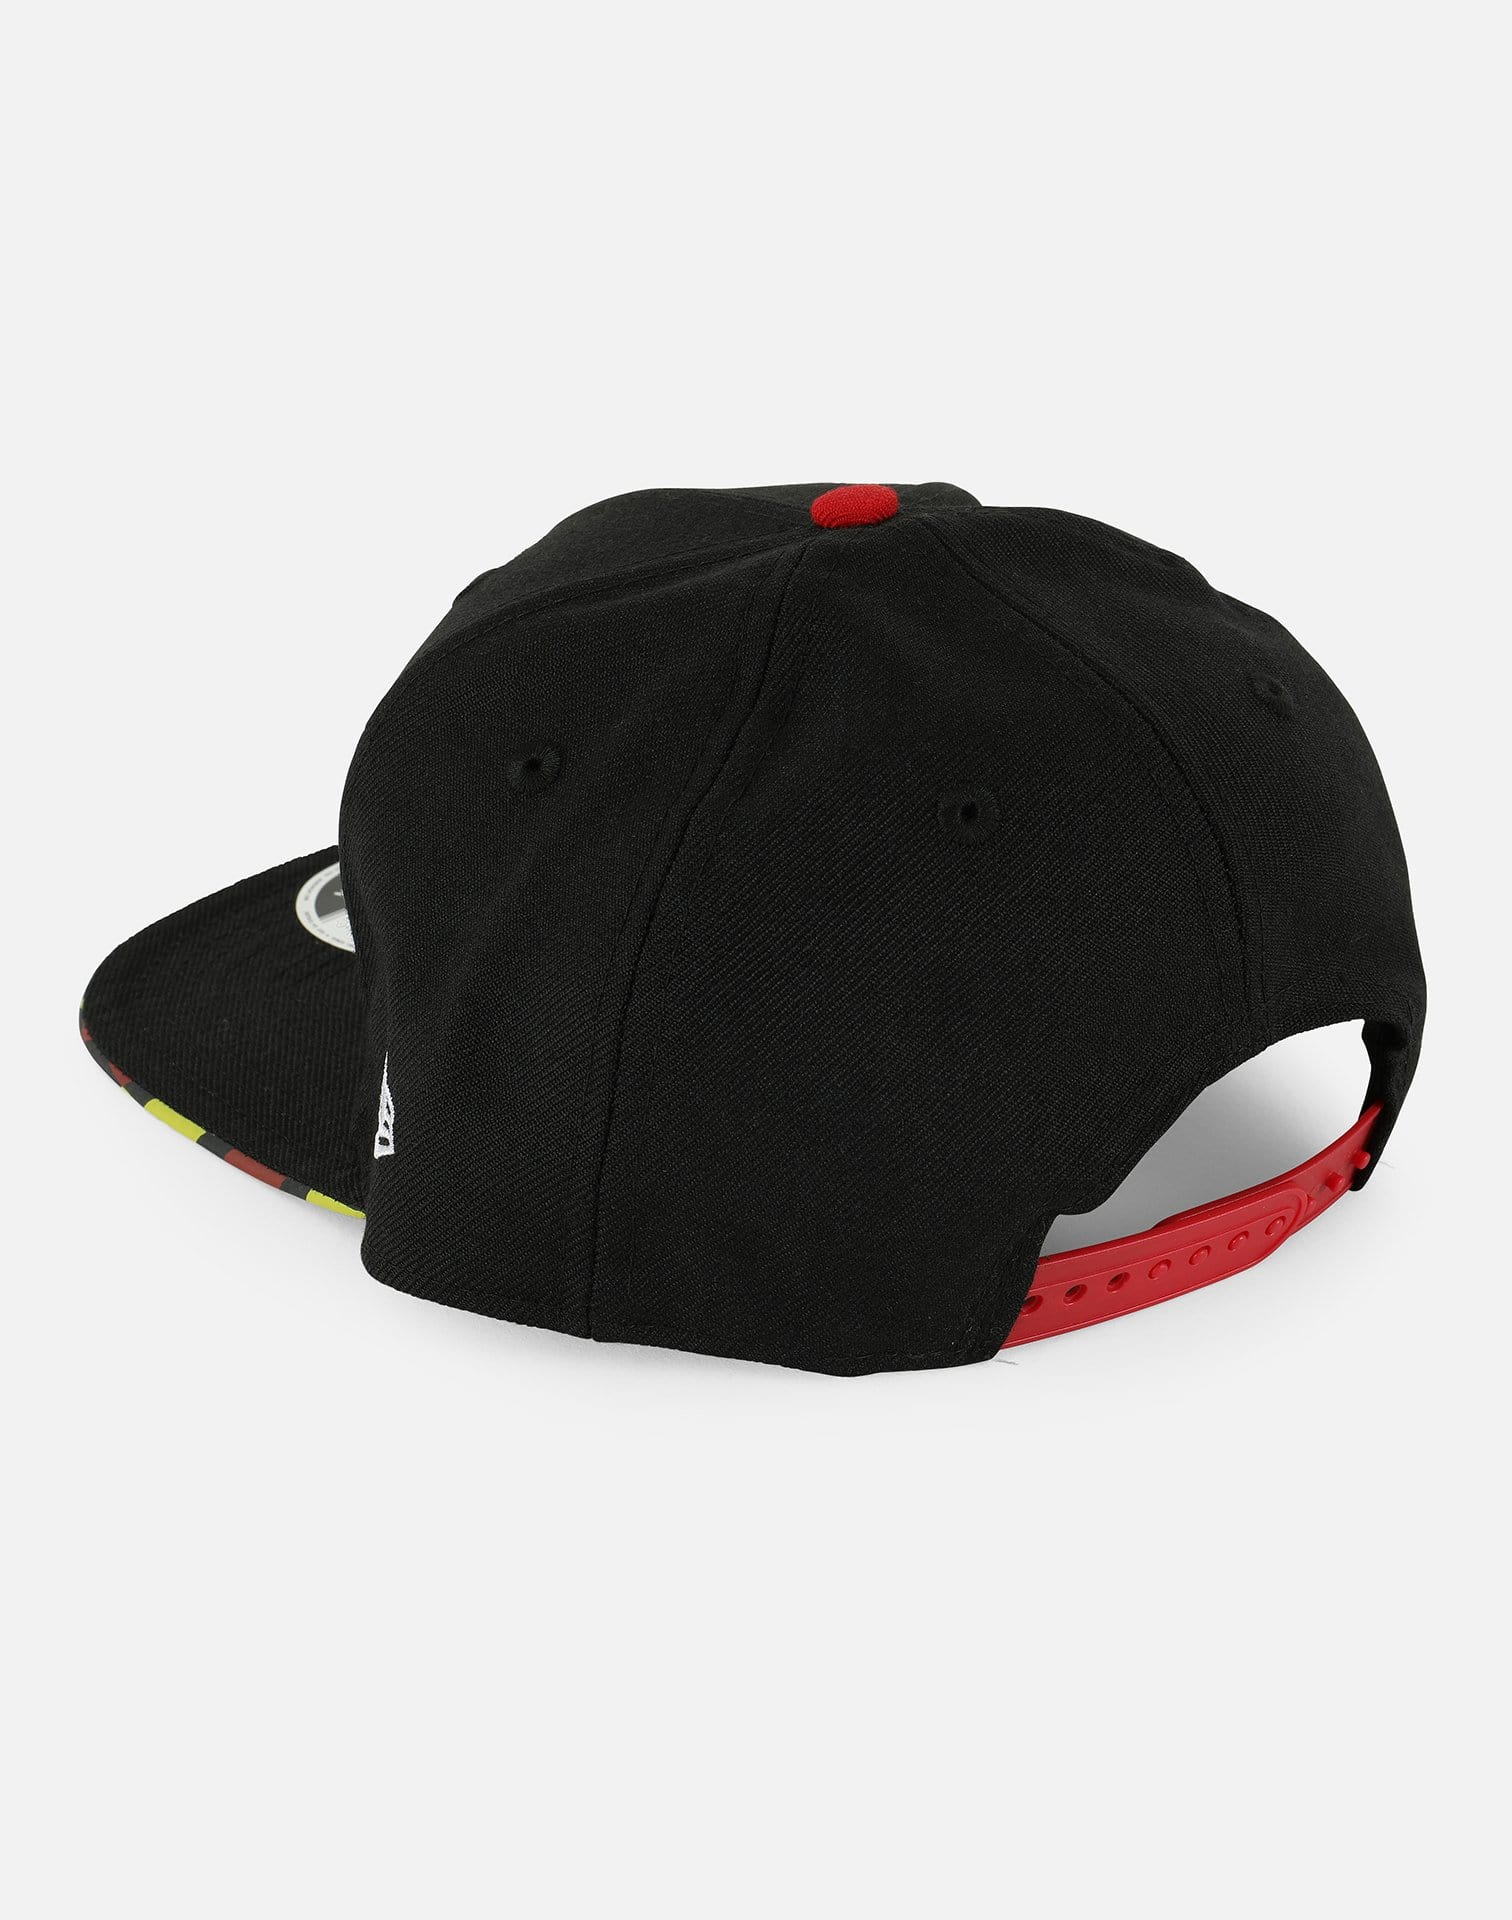 New Era University of Maryland Terrapins DTLR VILLA Exclusive Snapback Hat